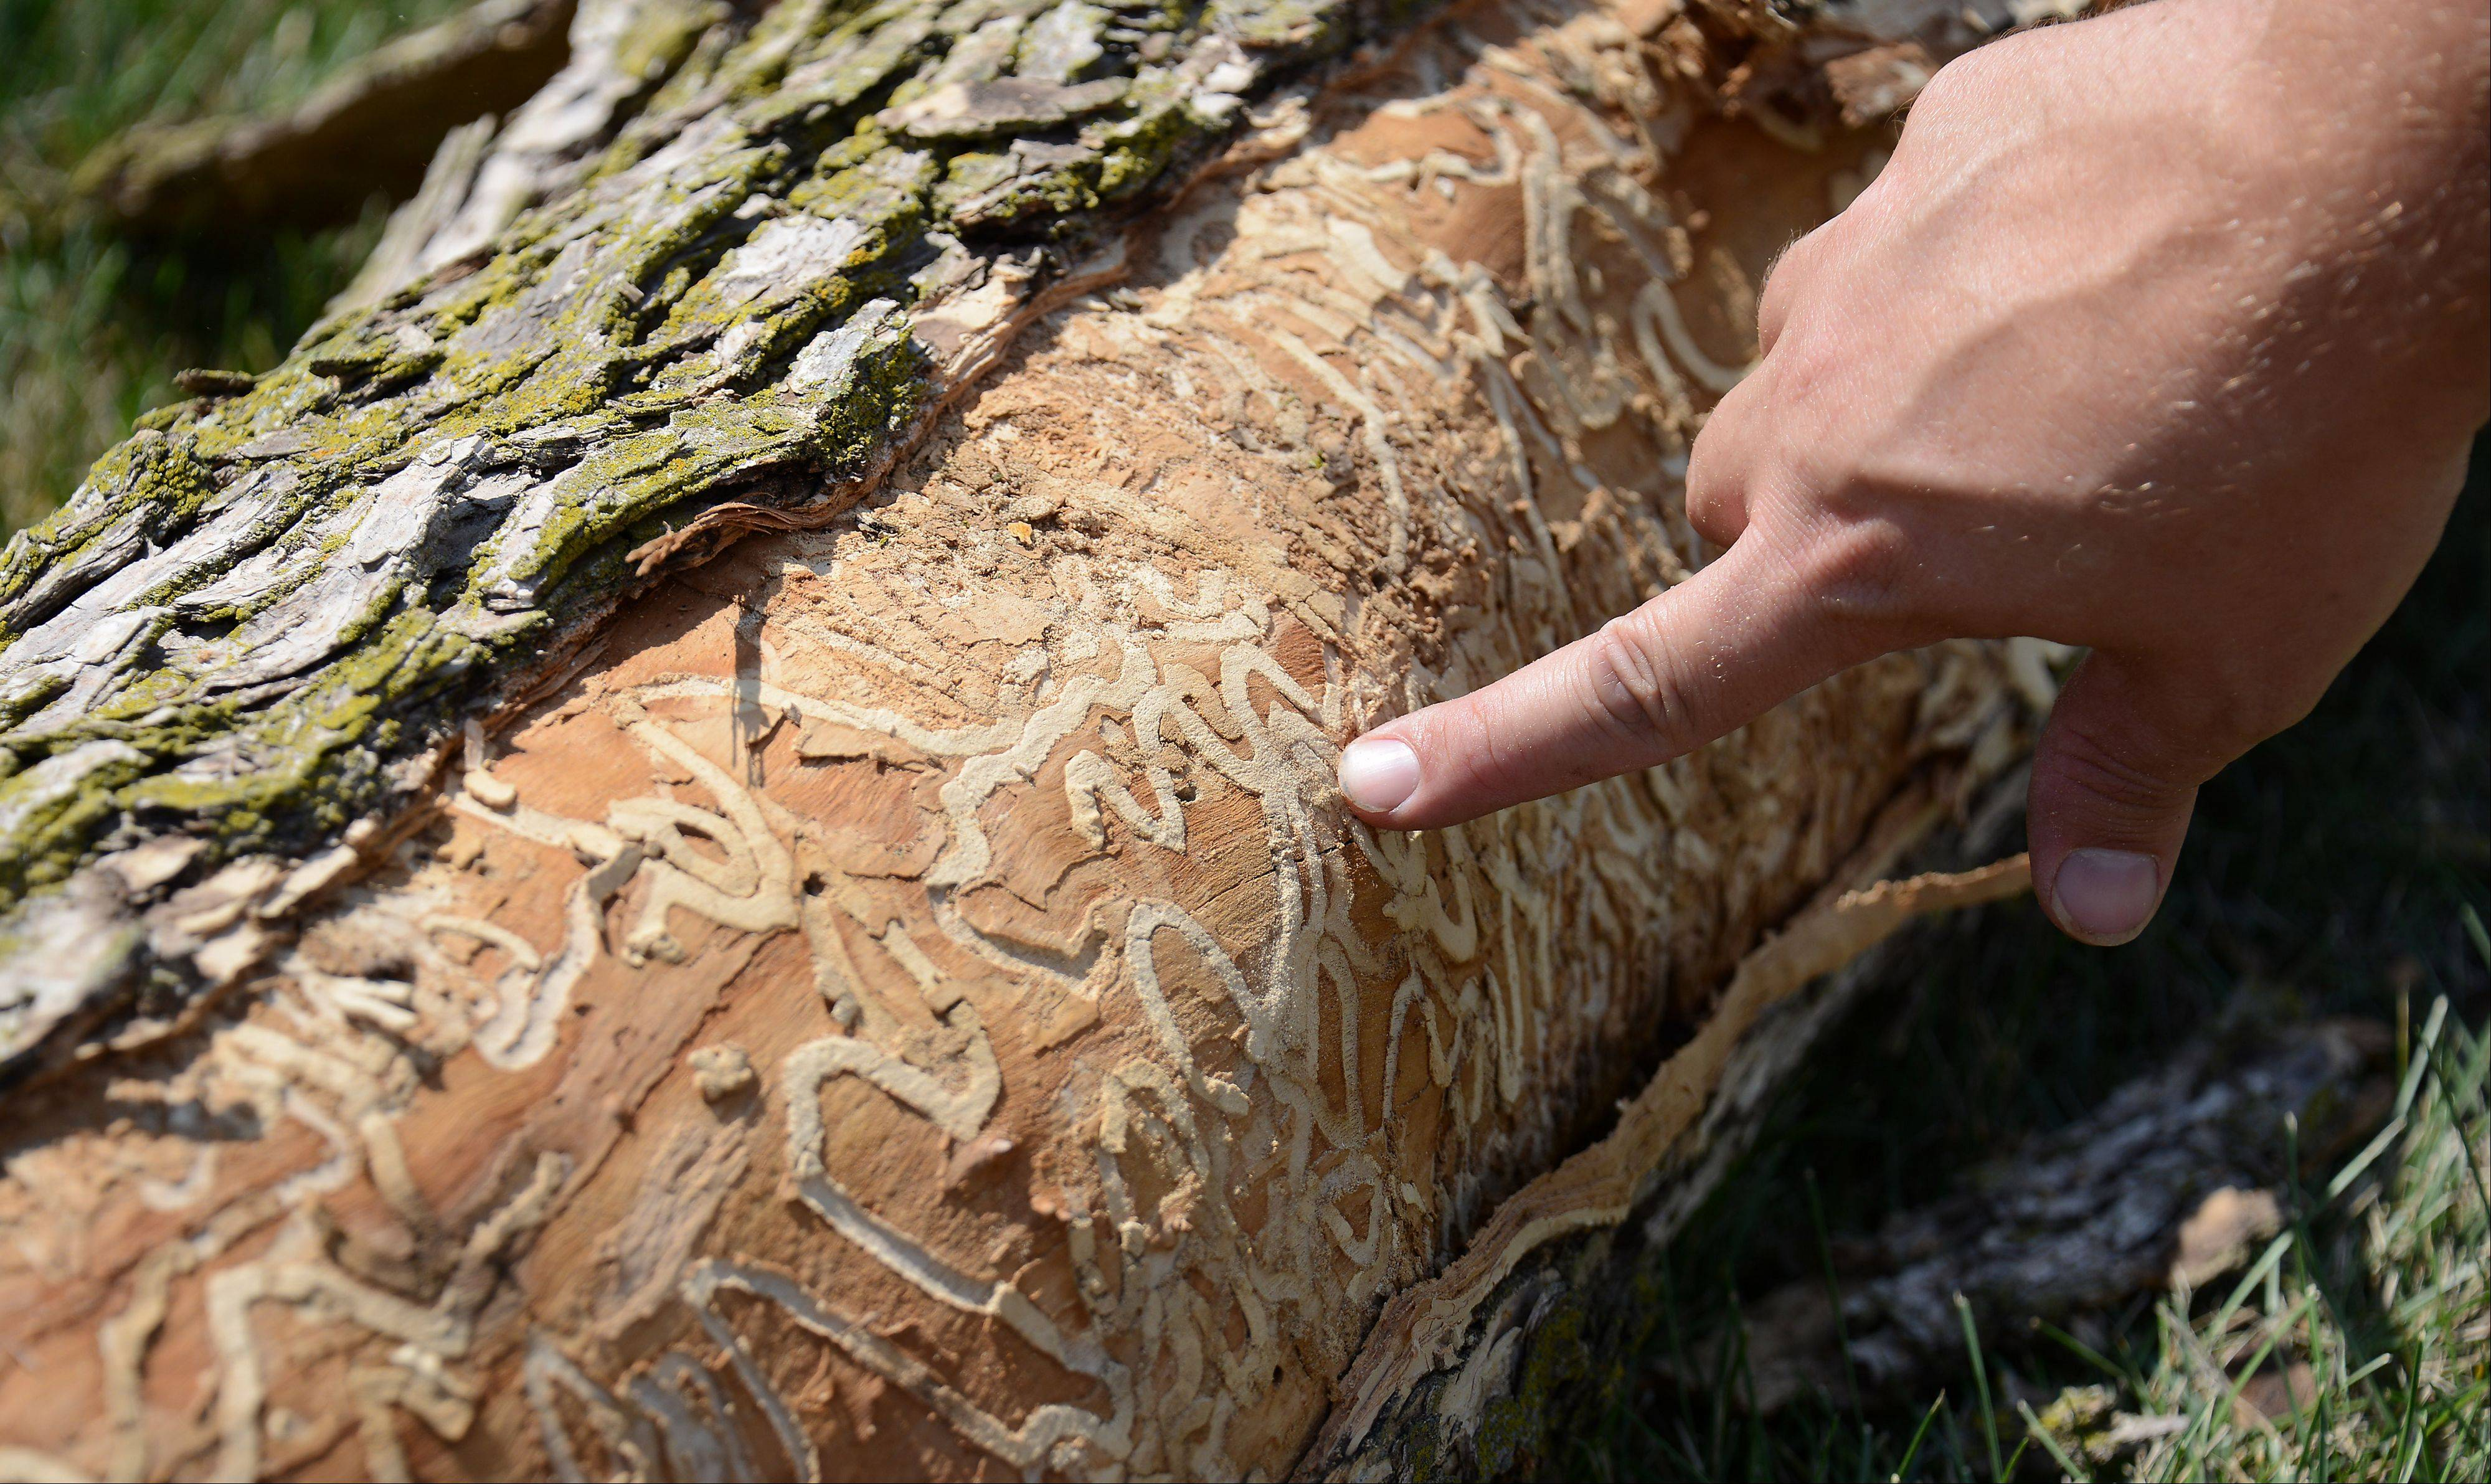 Travis Glay, manager of LandScapes Concepts, points out the destructive pattern of the emerald ash borer in a Schaumburg tree.